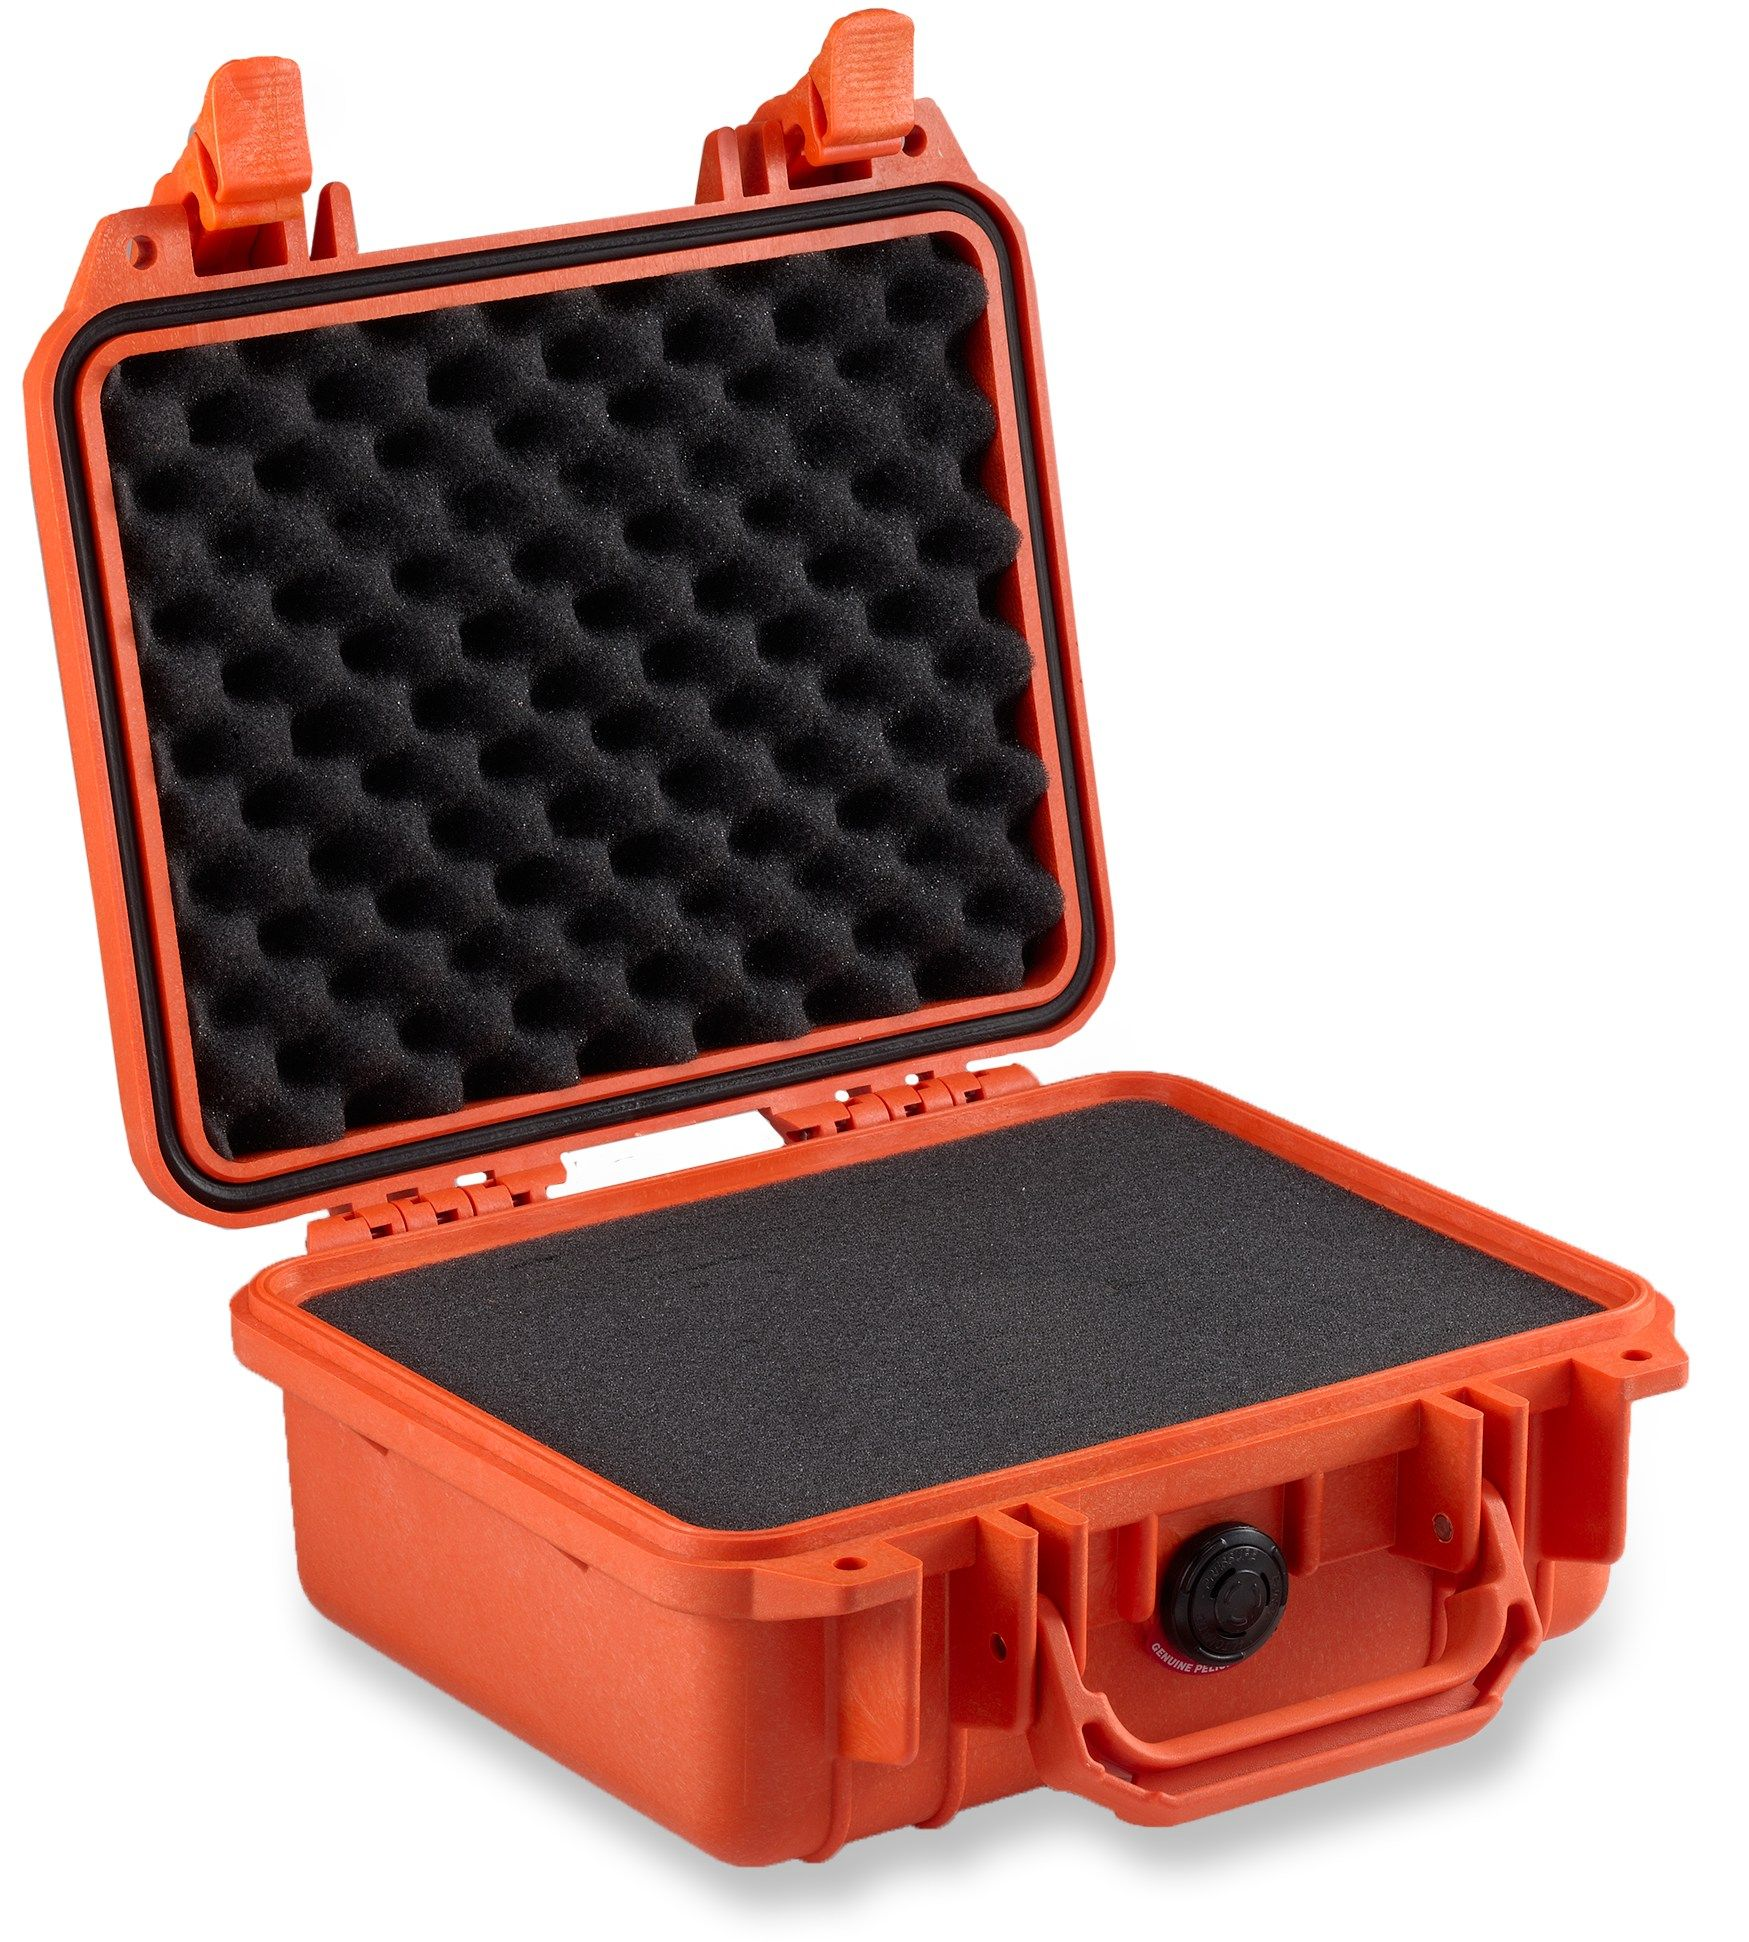 Pelican 1200 Case With Foam Pelican 1200 Pelican Case Water Proof Case